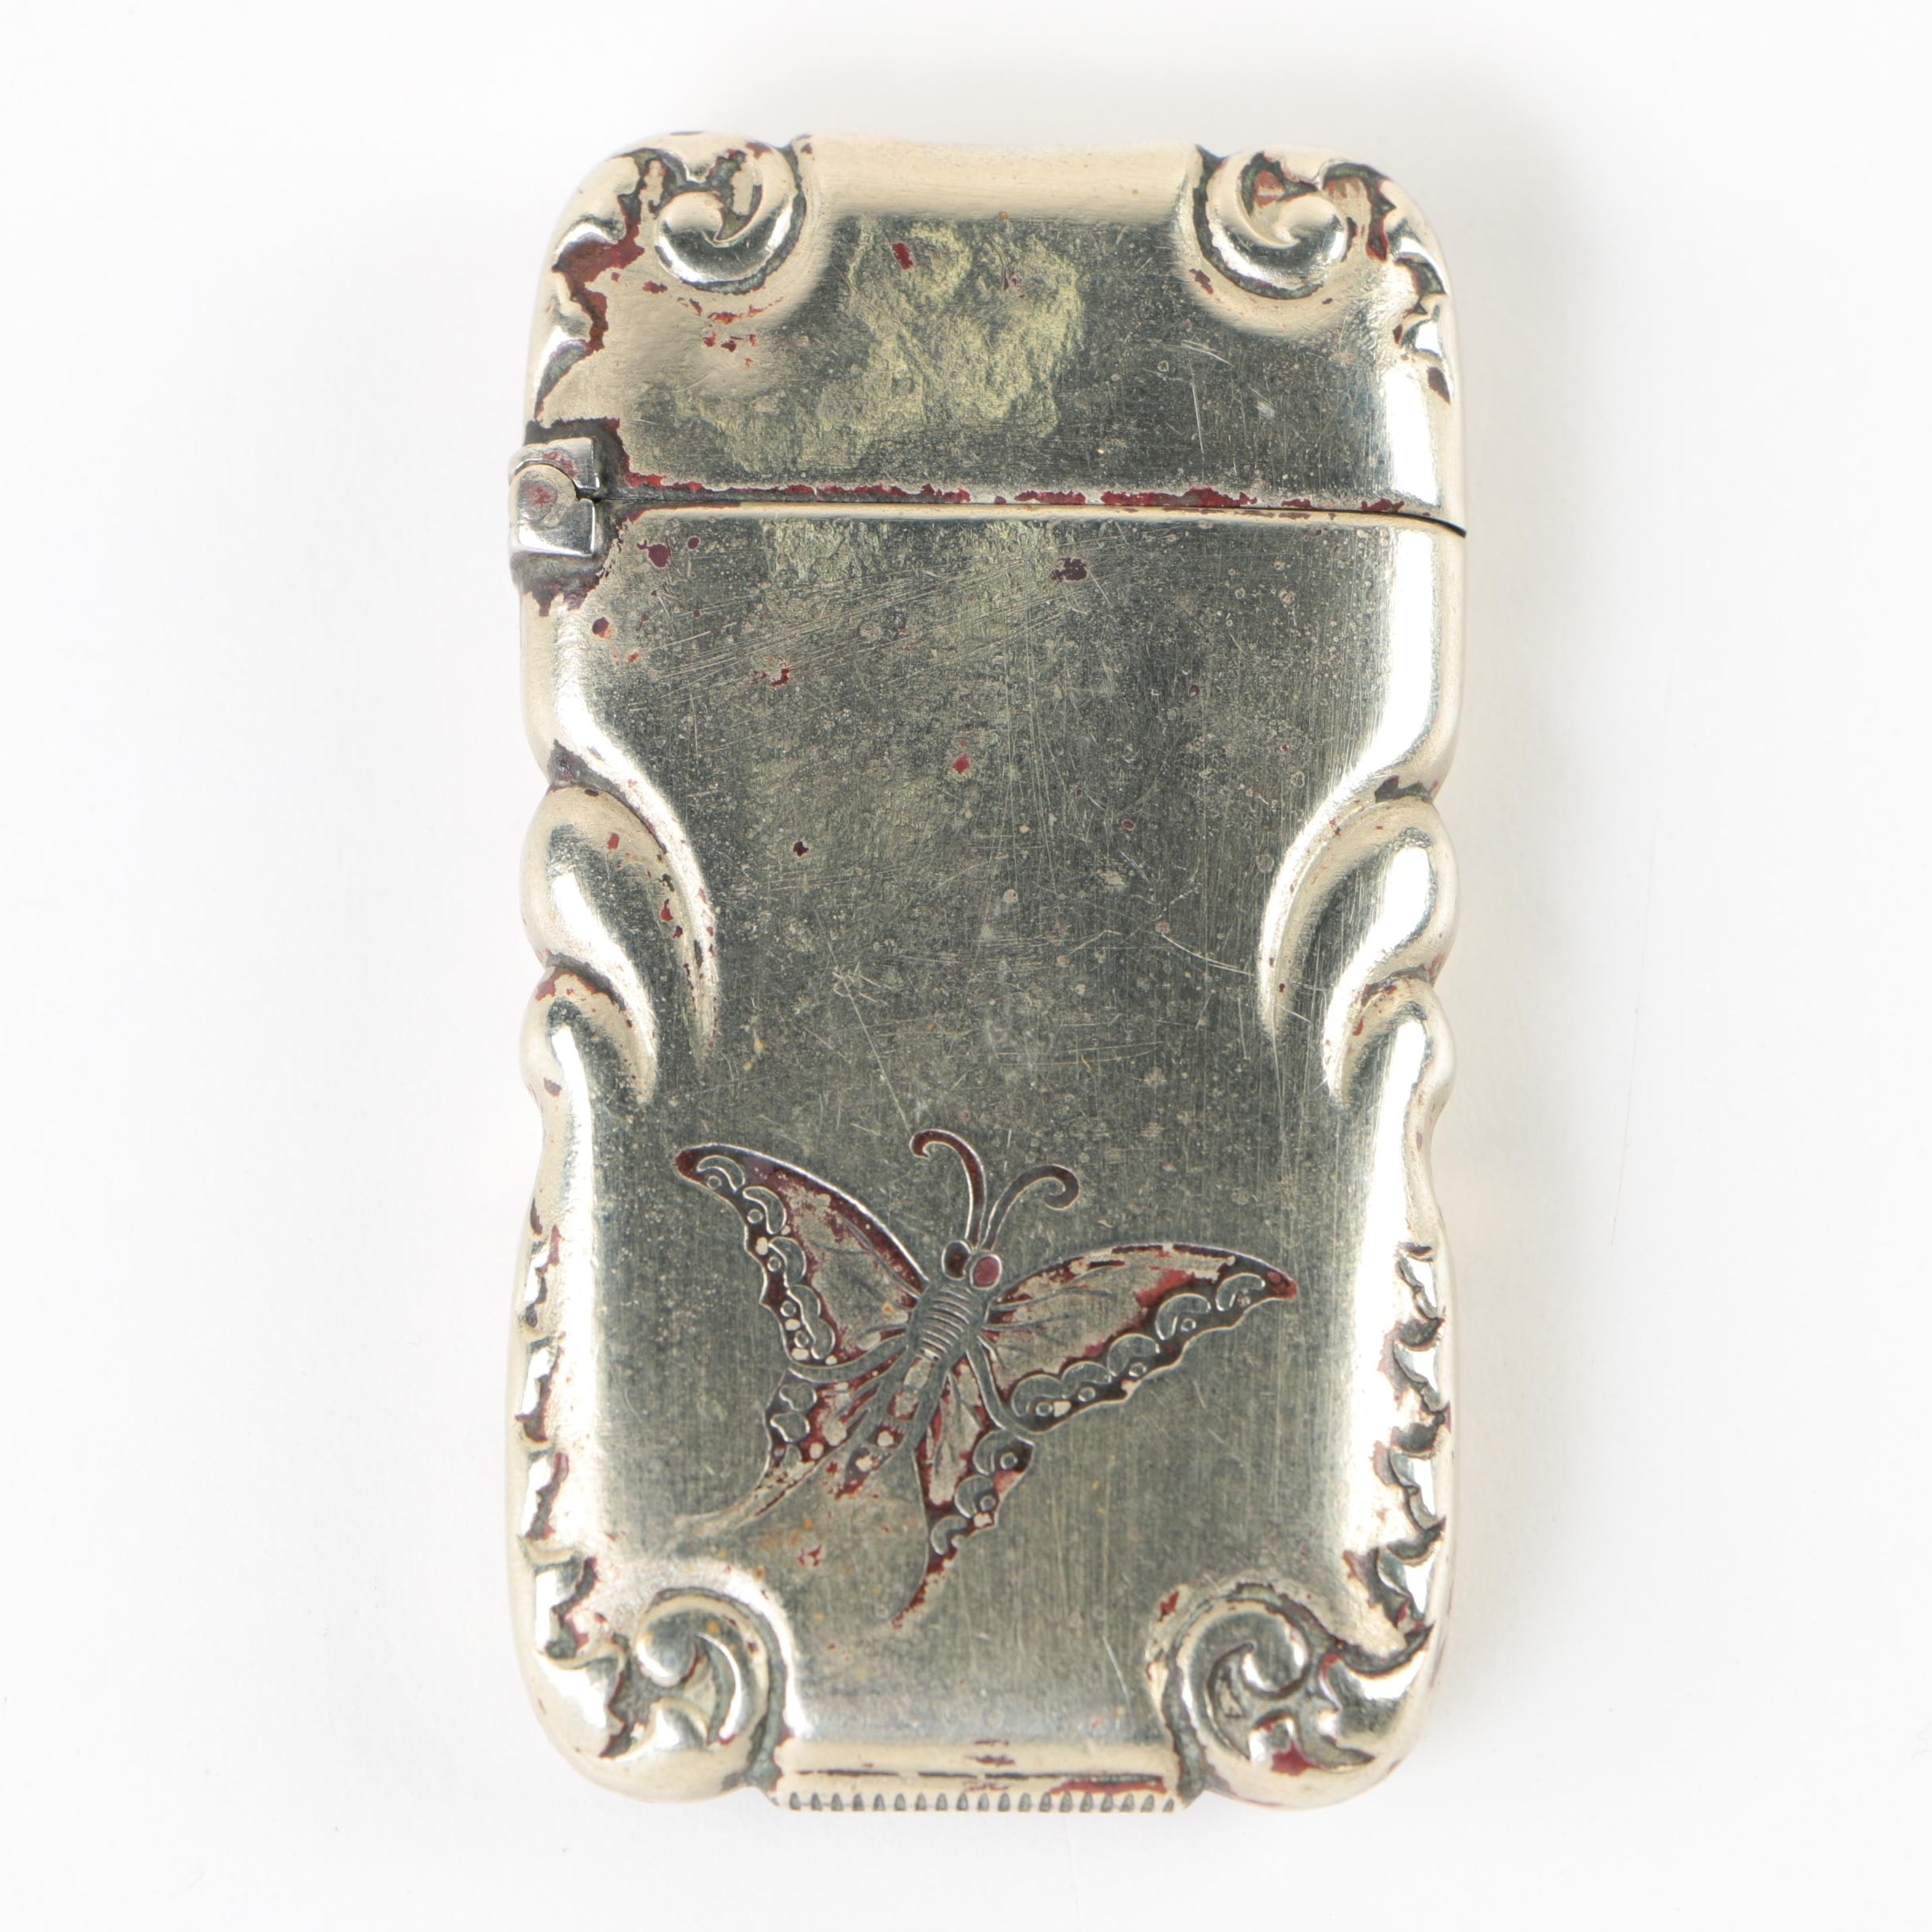 German Match Case with Butterfly Emblem, Late 19th/Early 20th Century